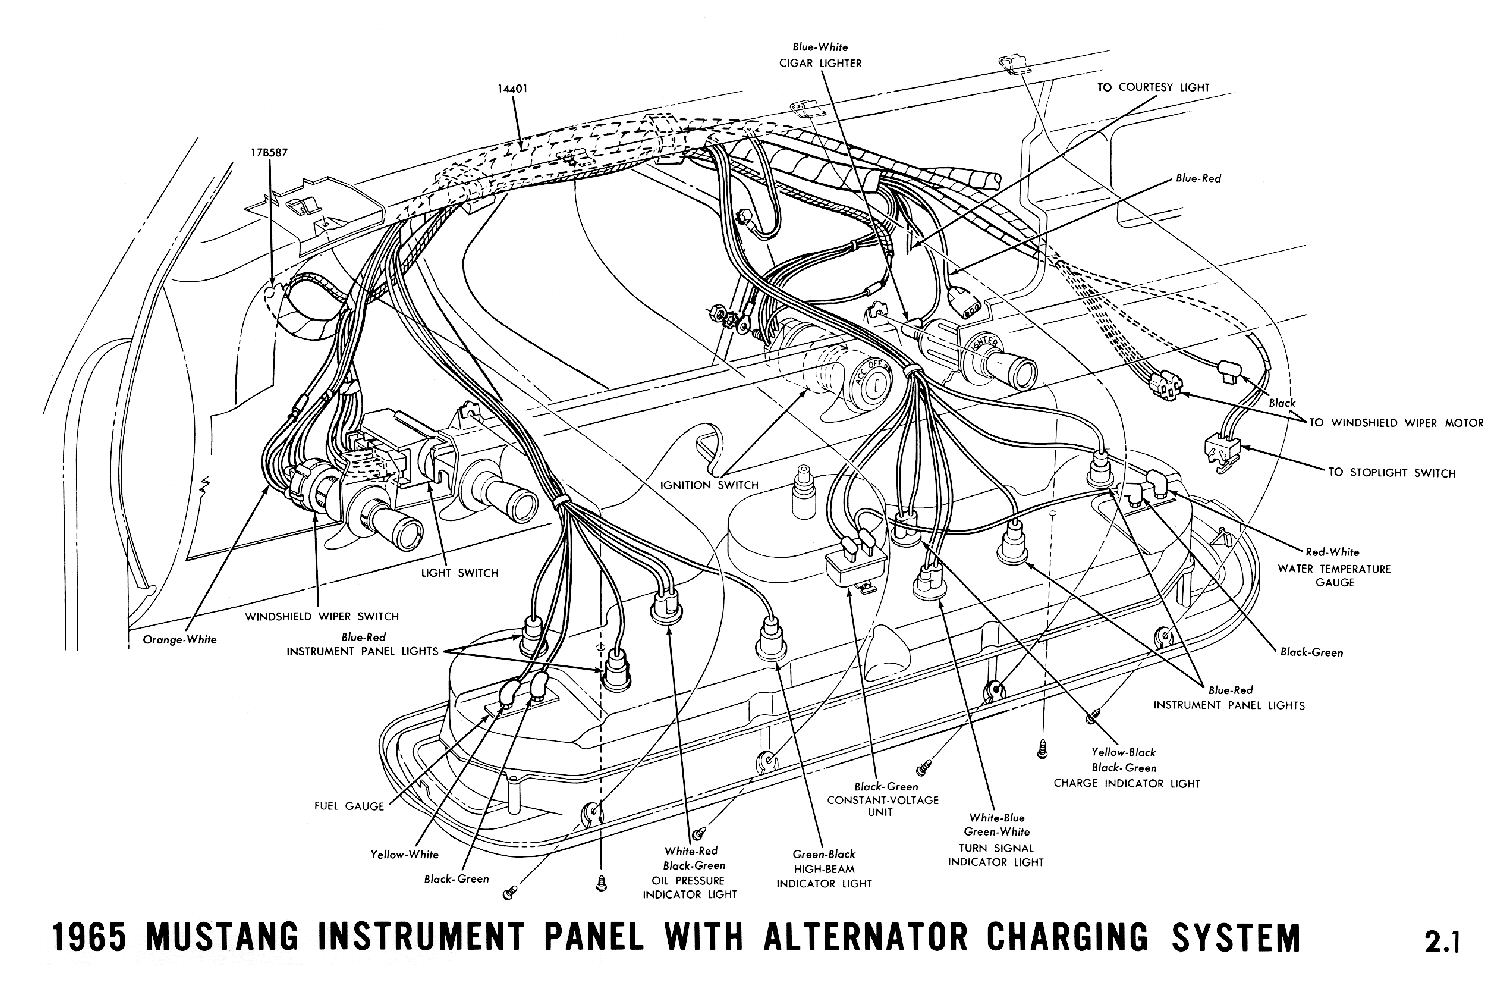 1965a 1965 mustang wiring diagrams average joe restoration mustang wiring harness diagram at crackthecode.co